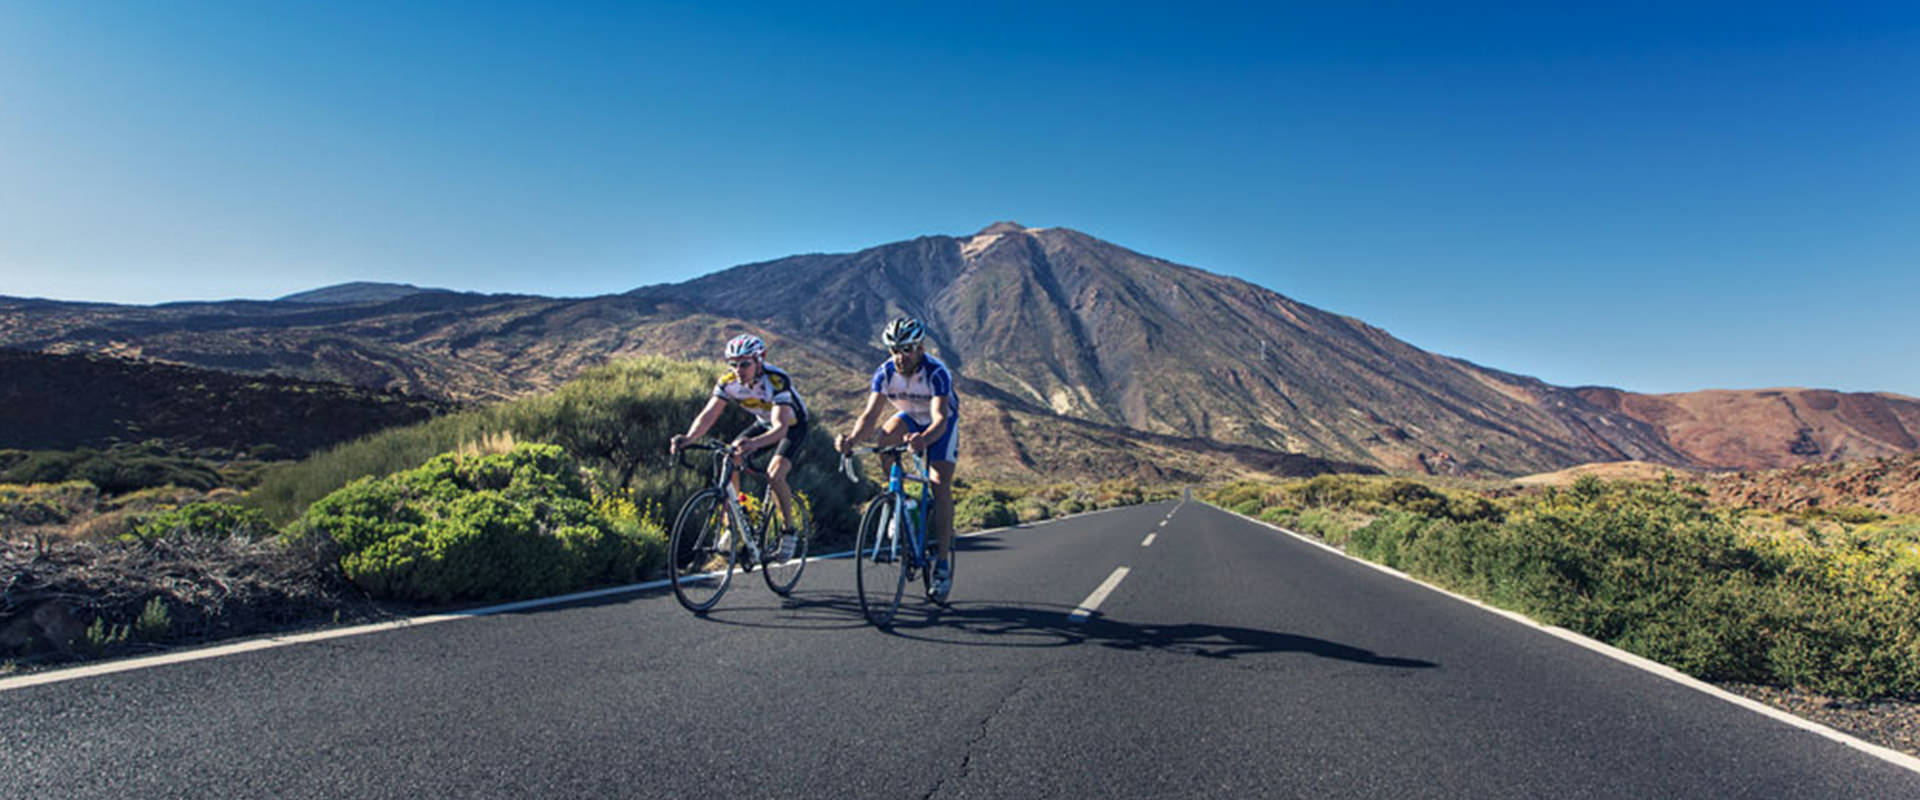 tenerife sub 100km cycle holiday header image